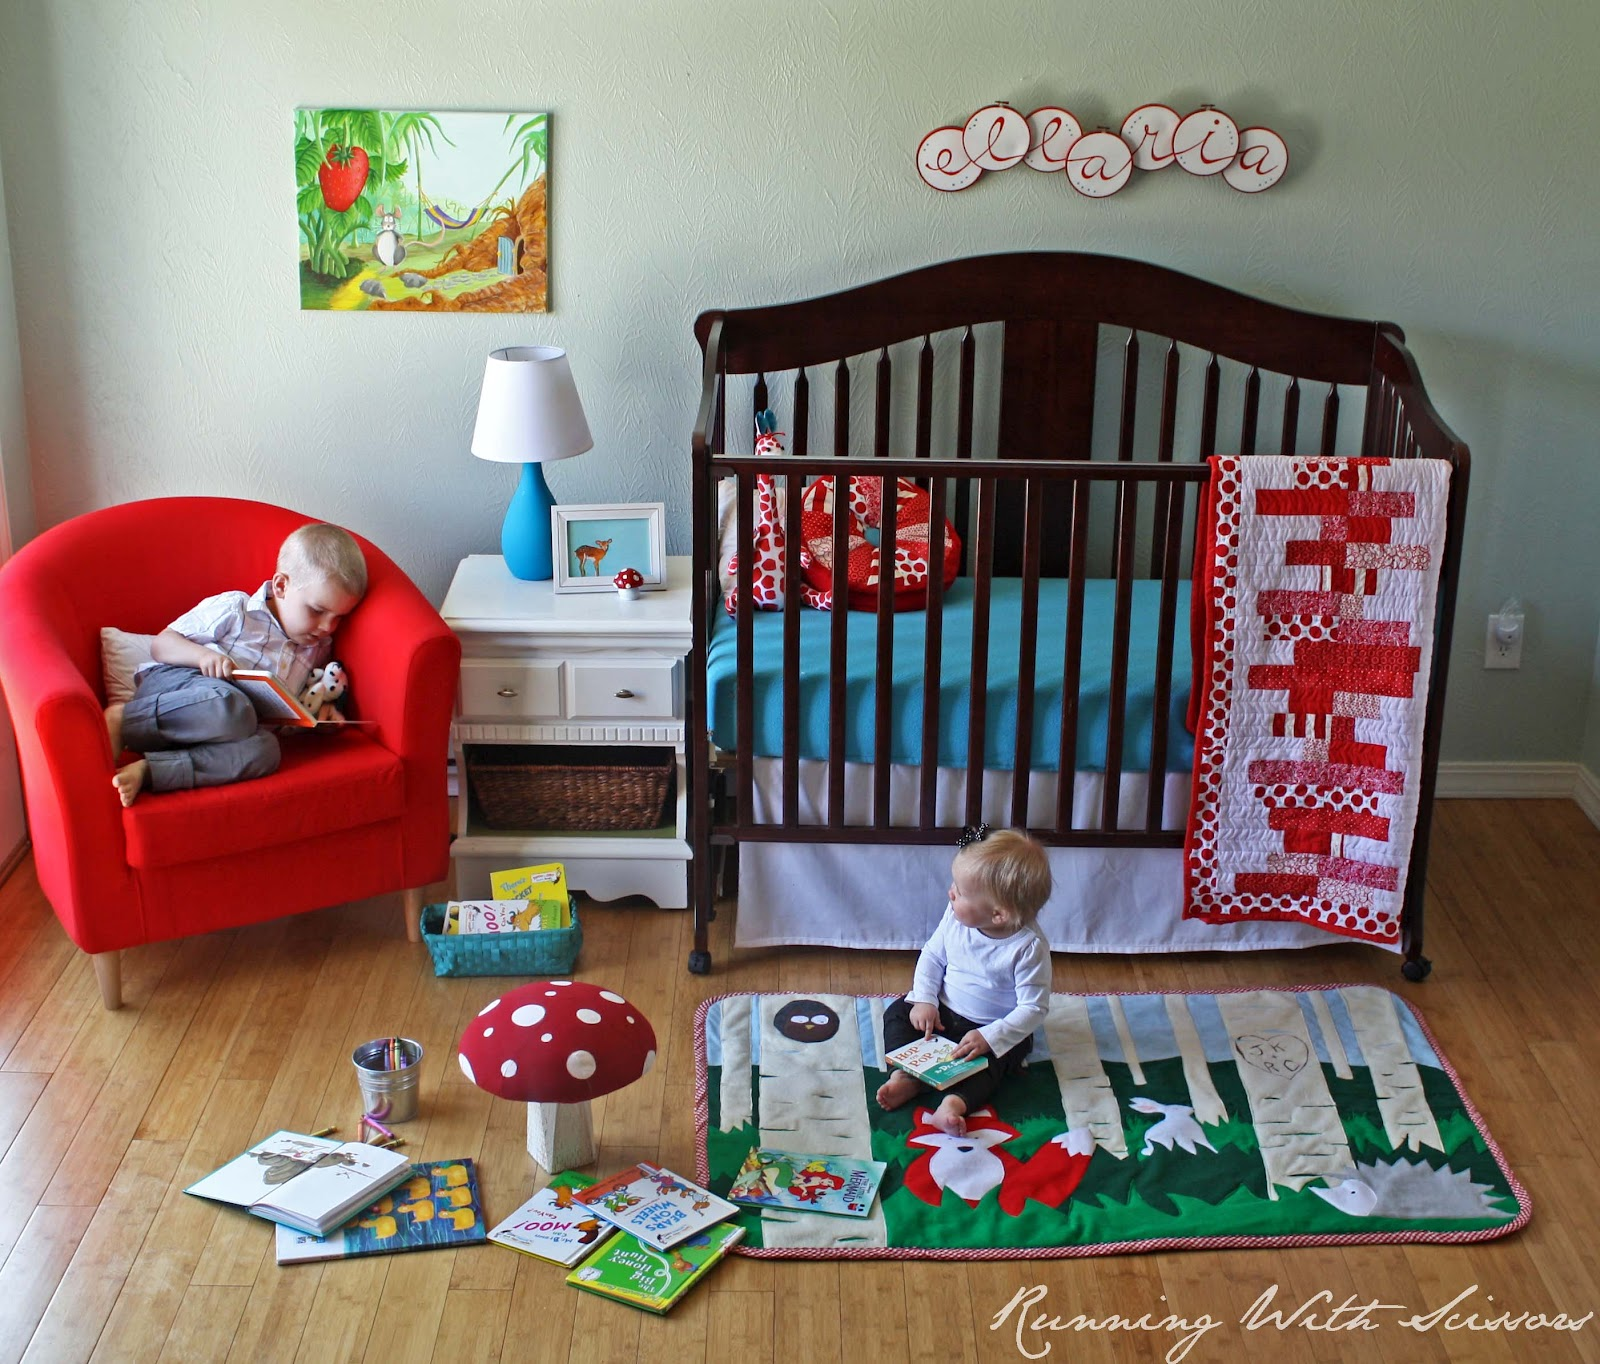 How To Make A Rug For A Child's Room. Plus A Template